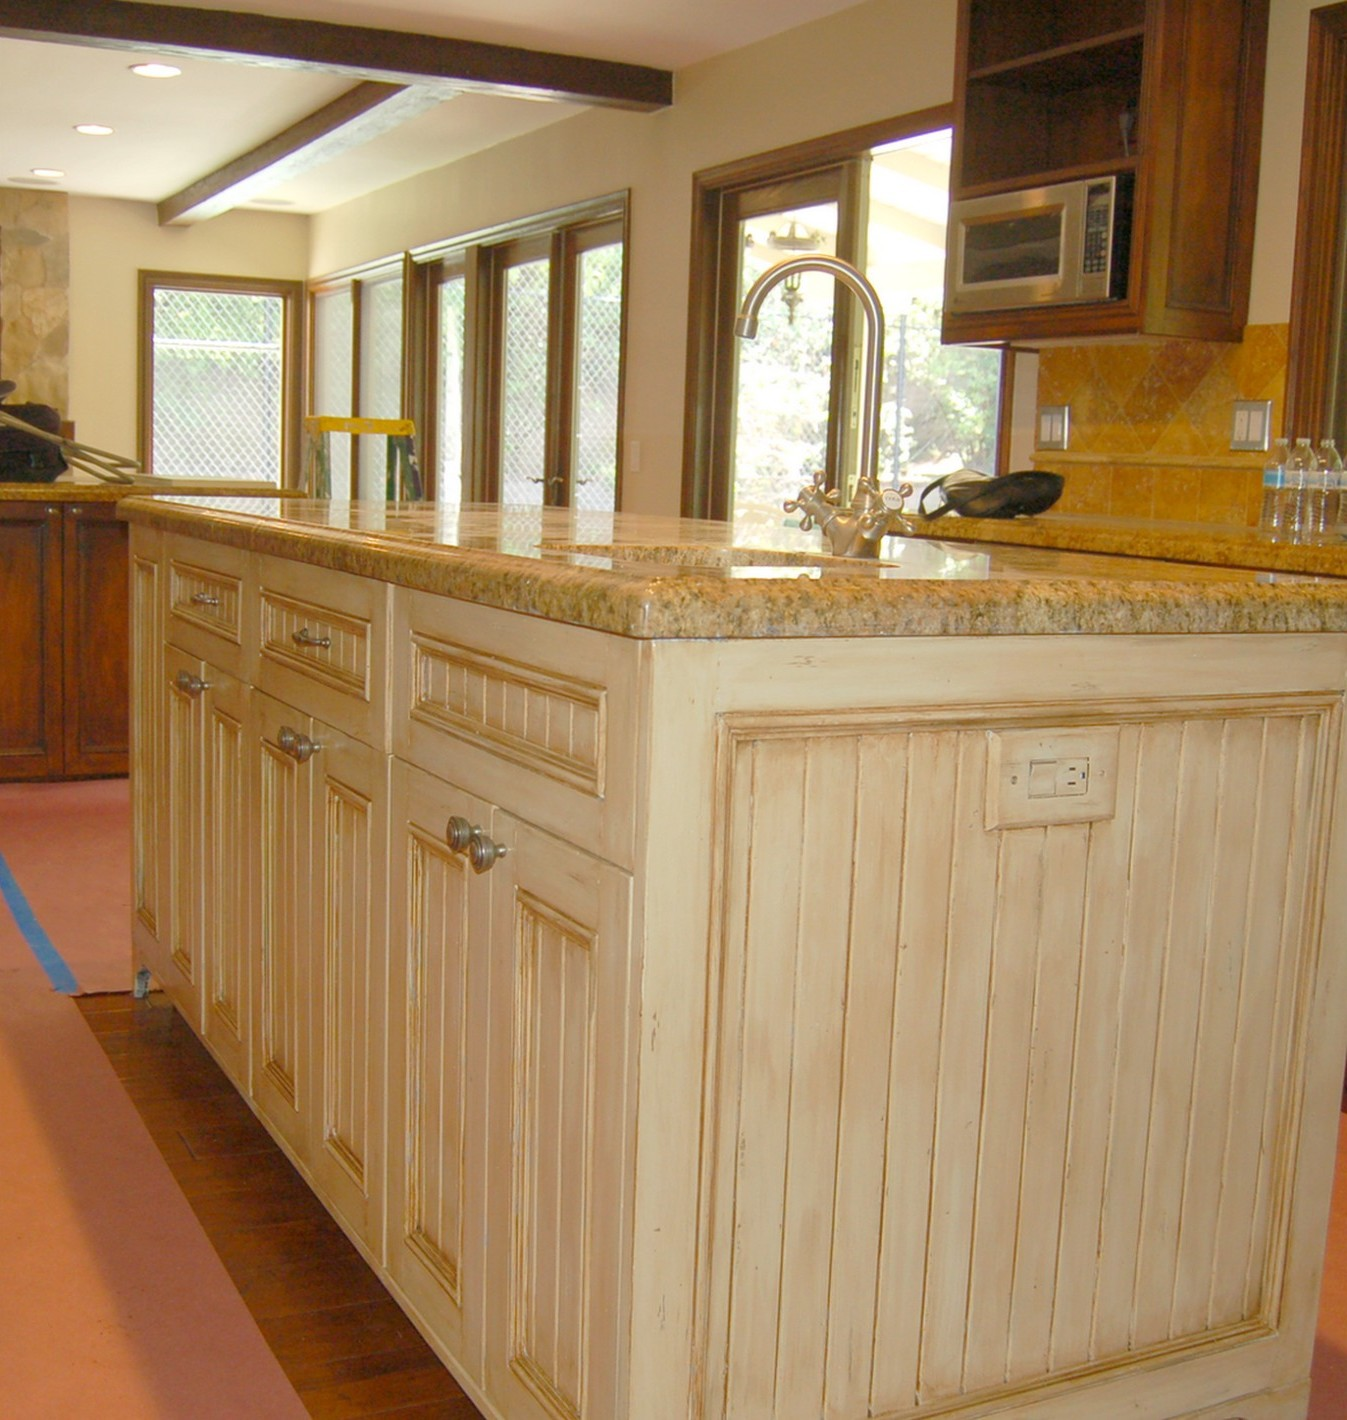 island cabinets after.jpg